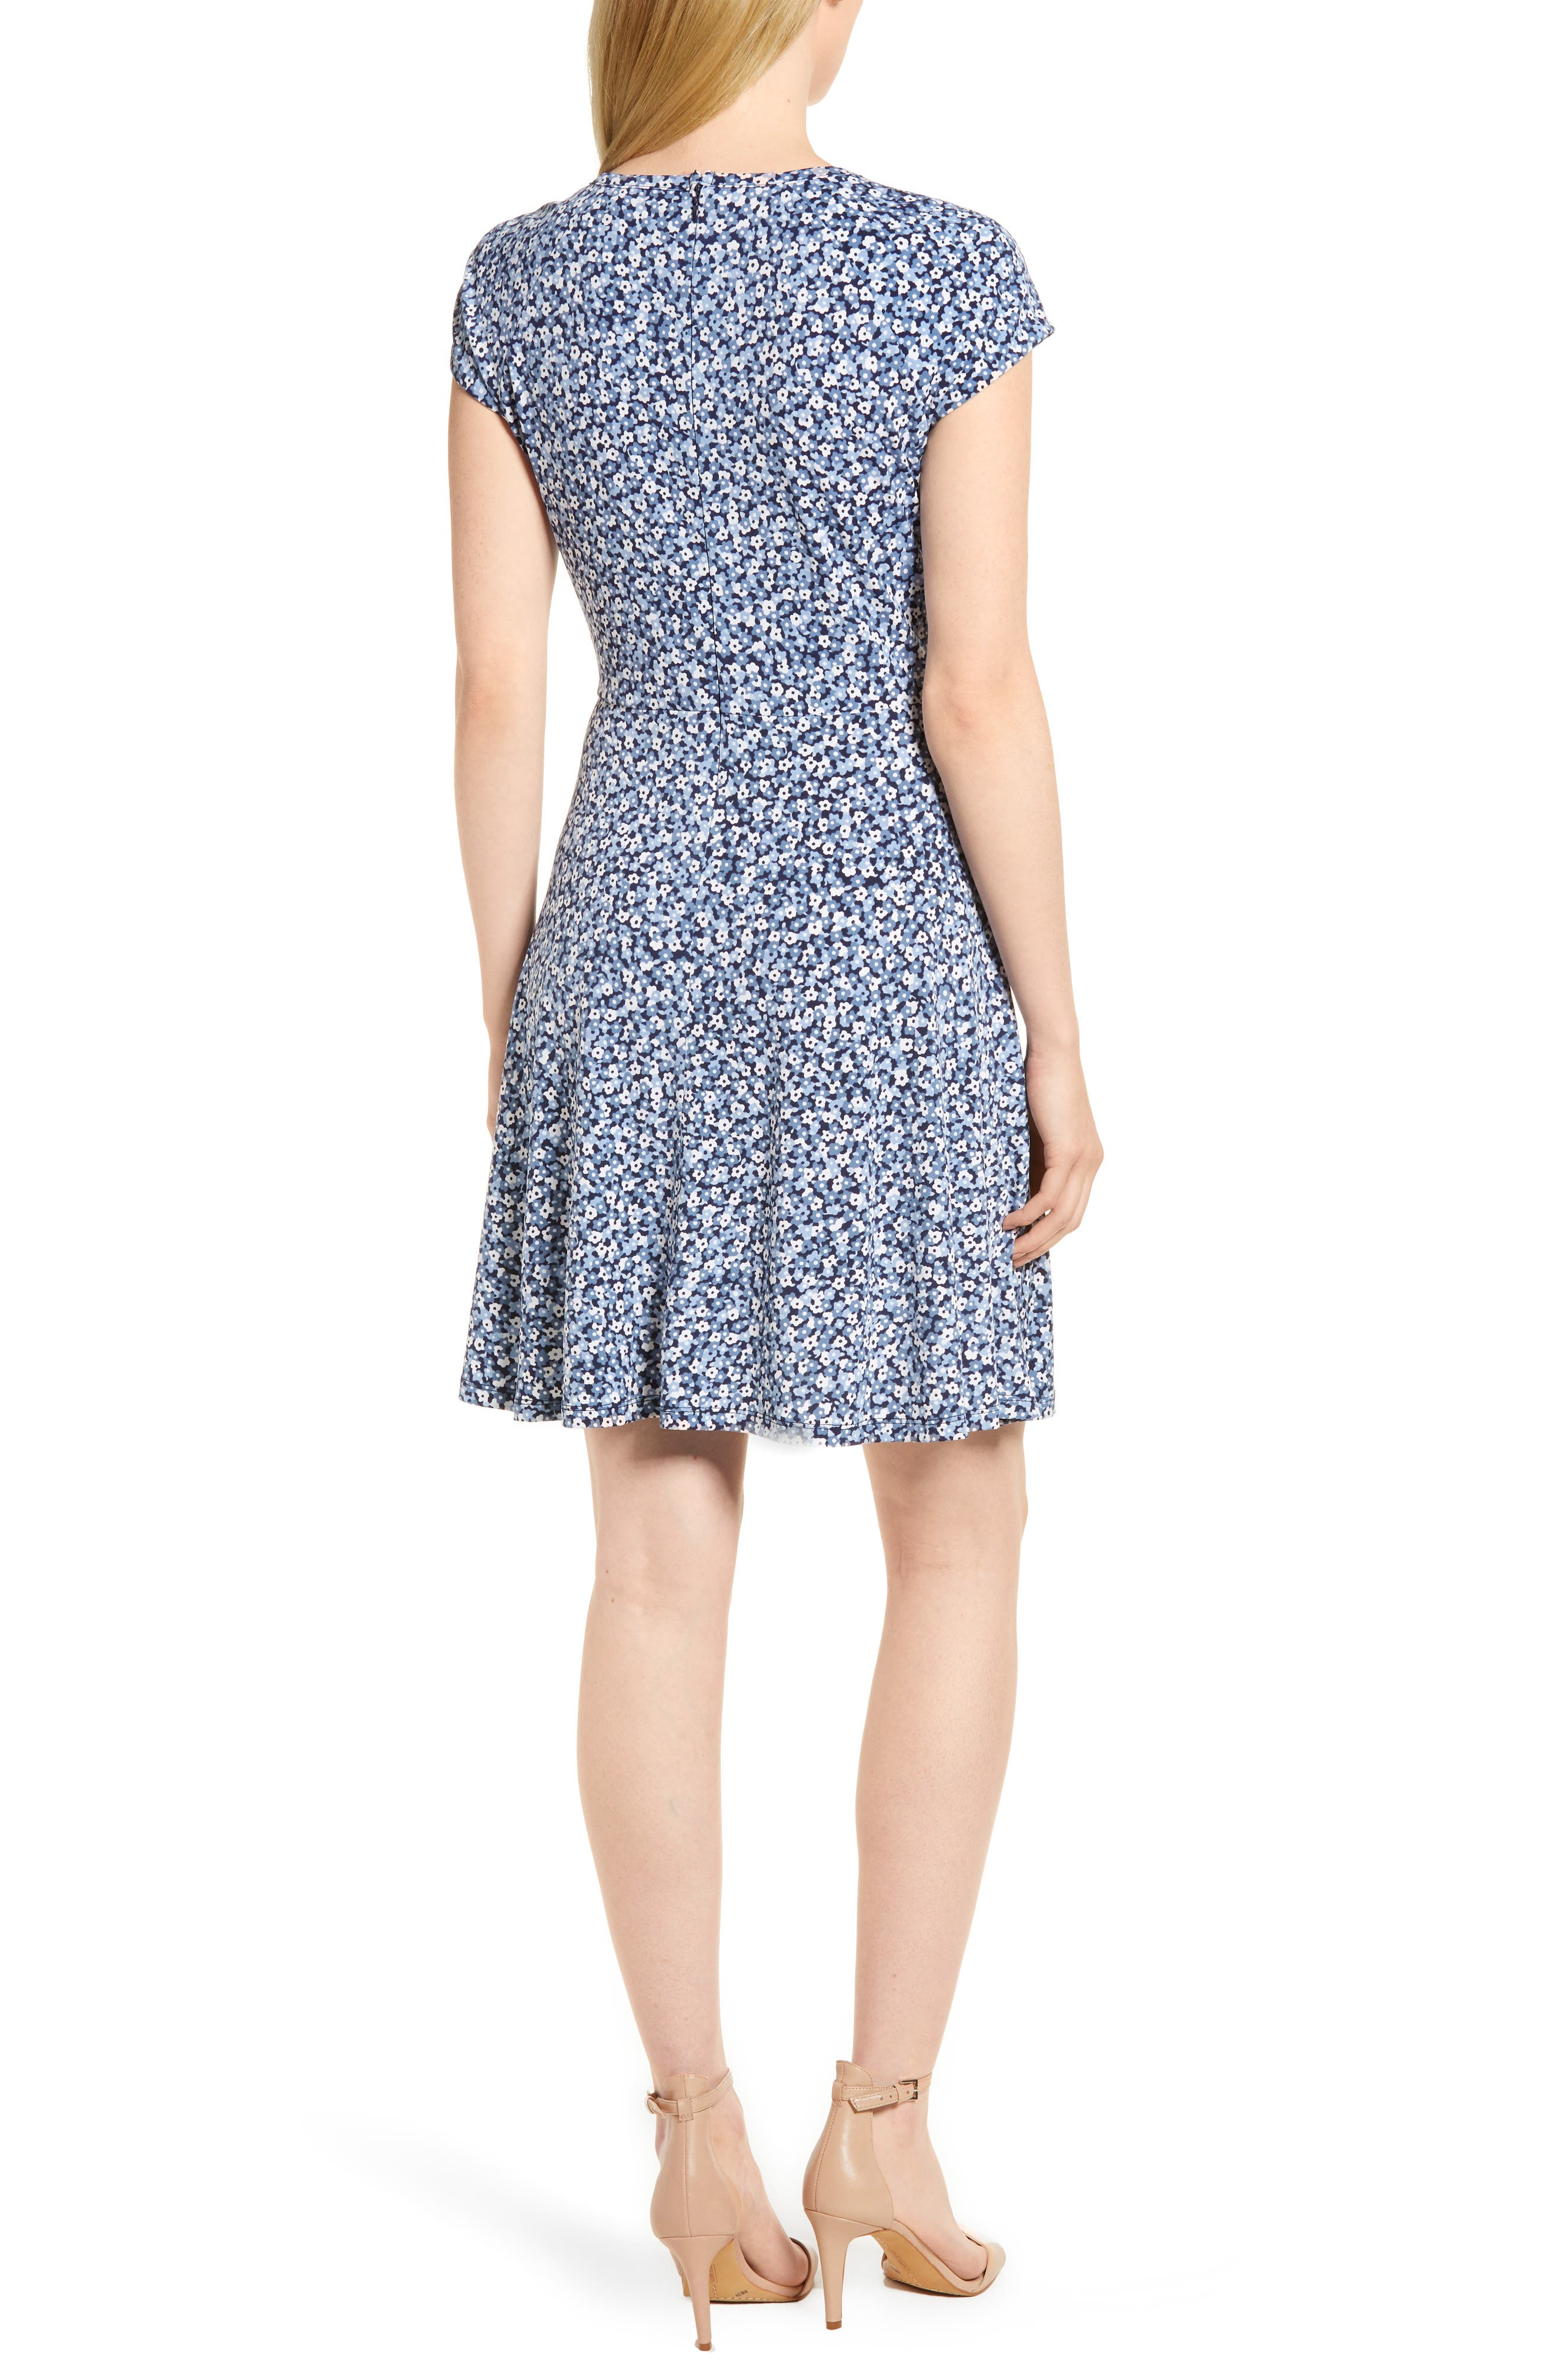 Collage Floral Double Keyhole Dress,                             Alternate thumbnail 2, color,                             True Navy/ Light Chambray